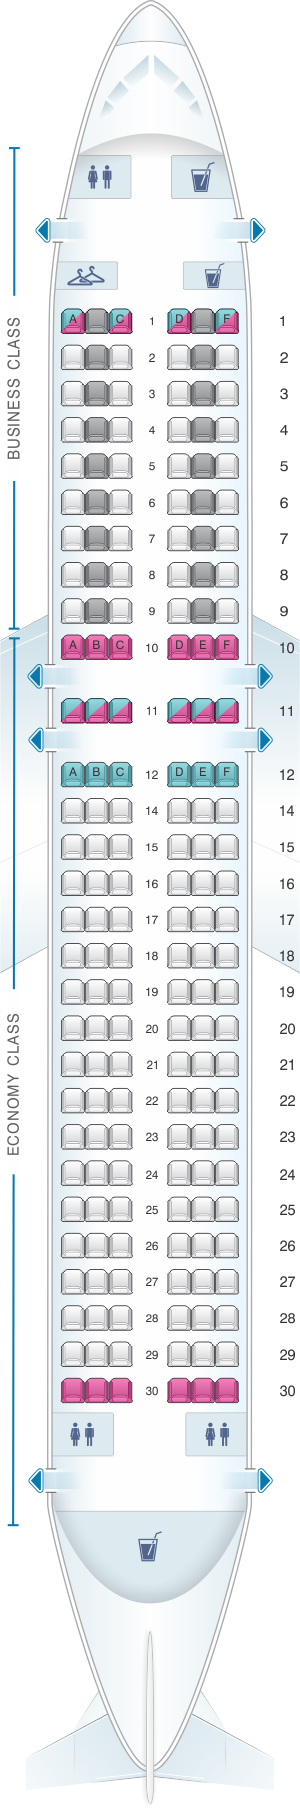 Seat map for Air France Airbus A320 Europe V1